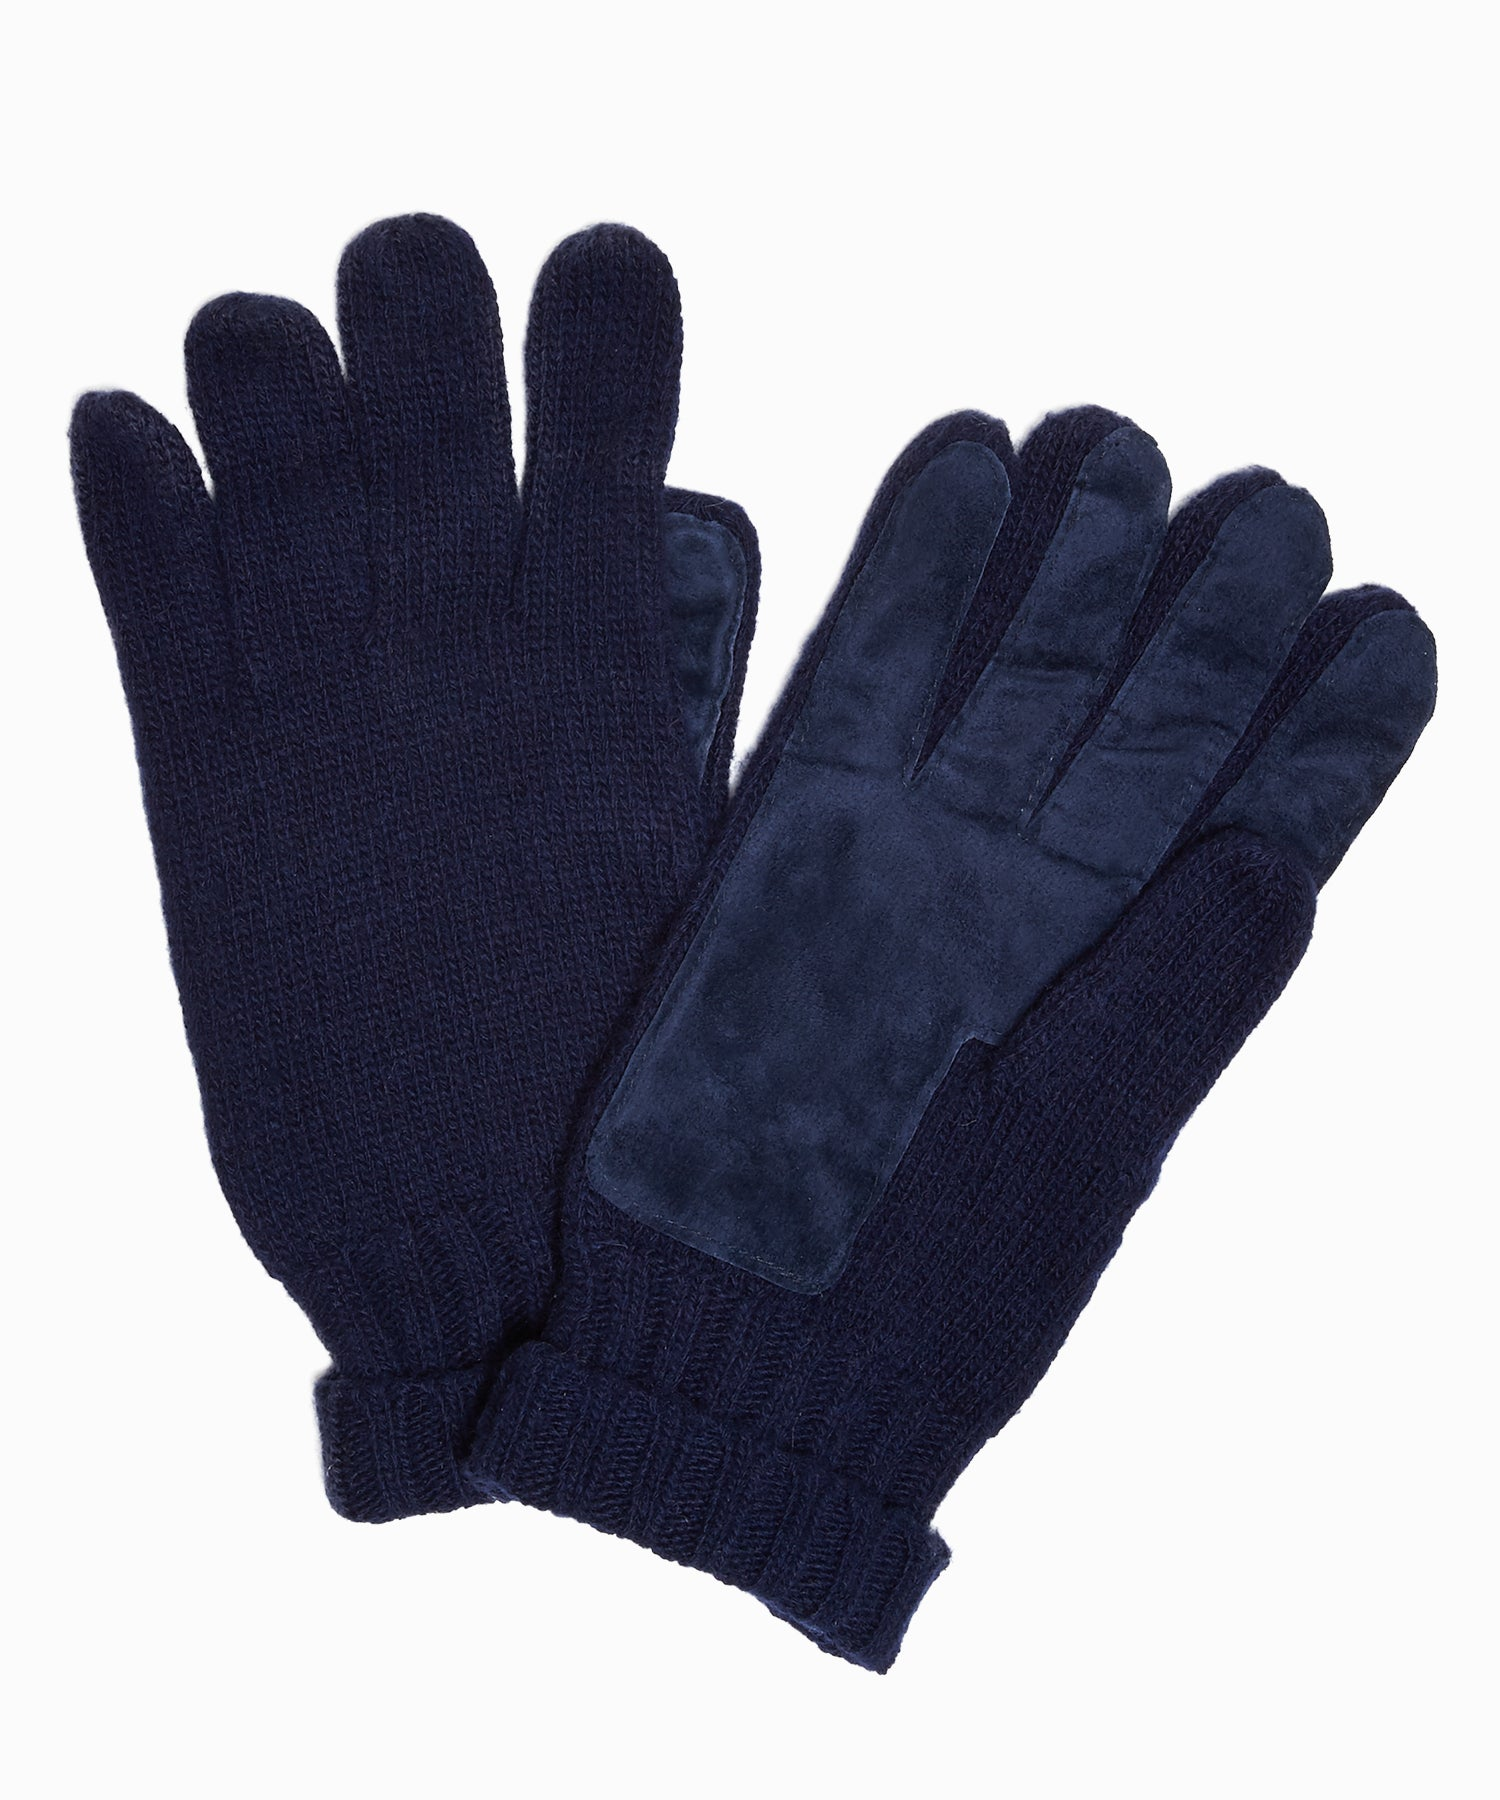 Dents Cardiff Cashmere Knitted Gloves with Suede Palm Patch in Navy